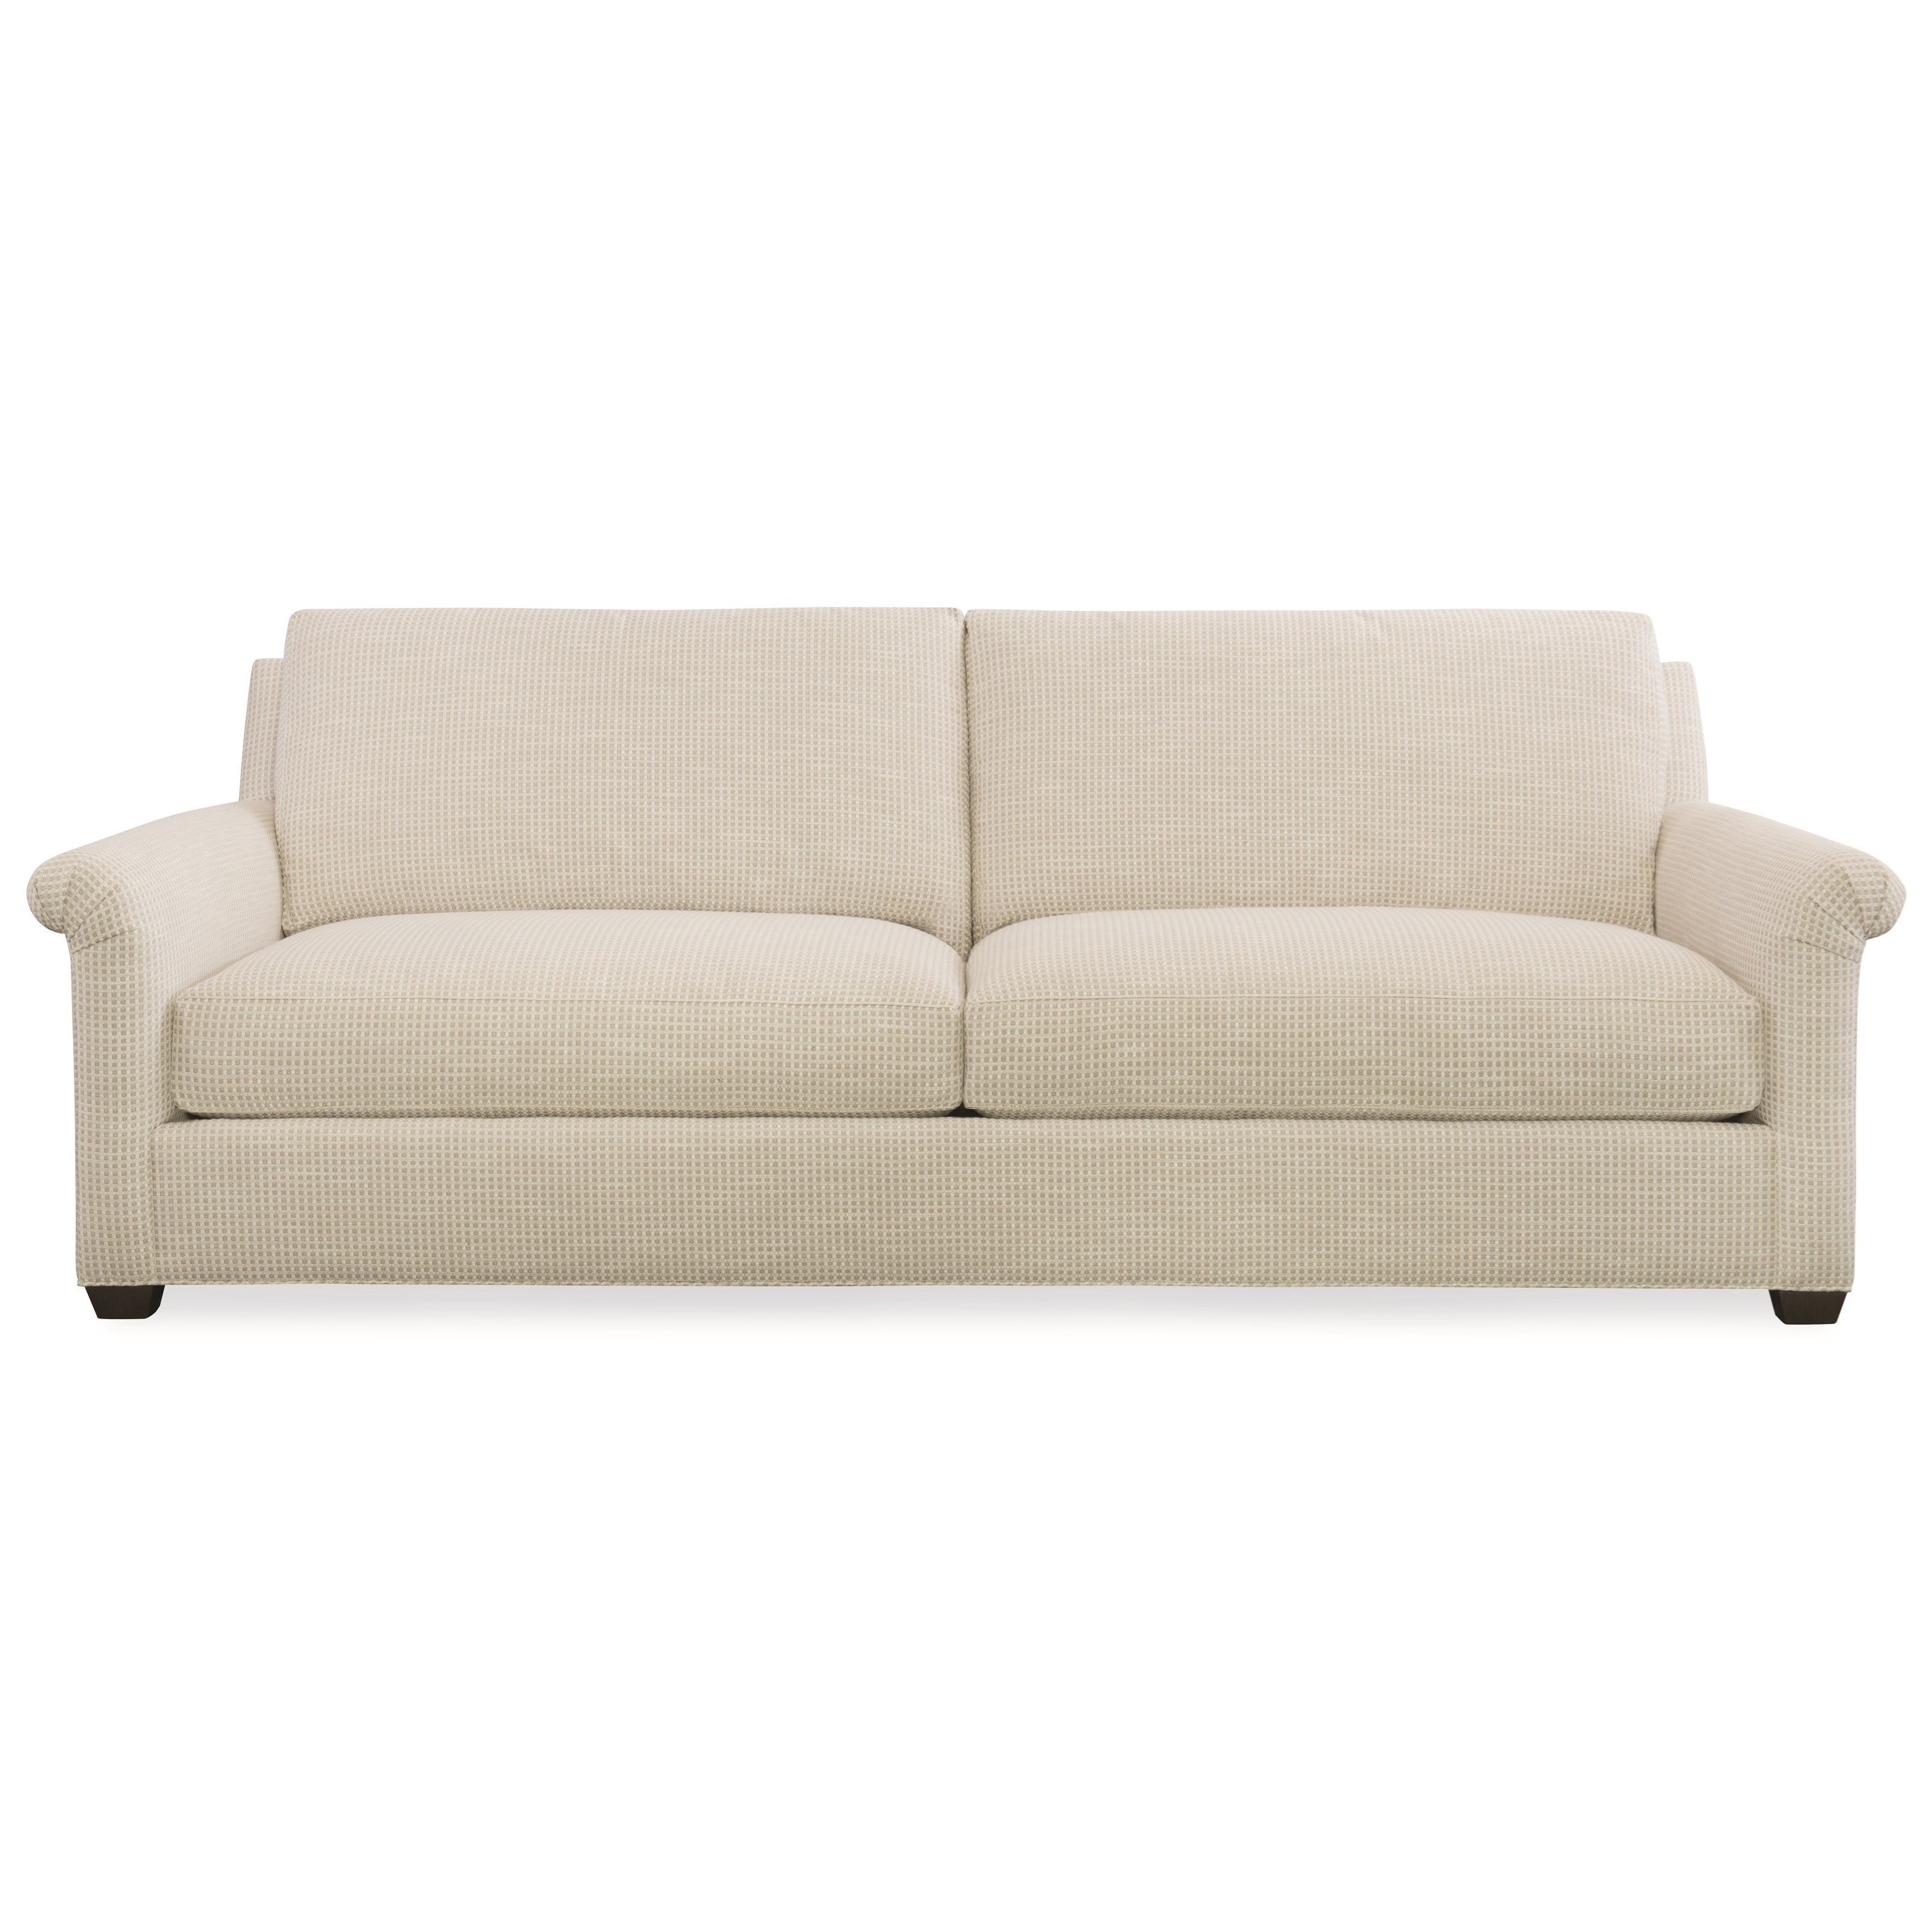 Paige Transitional Two Cushion Sofa By C R Laine At Jacksonville Furniture Mart